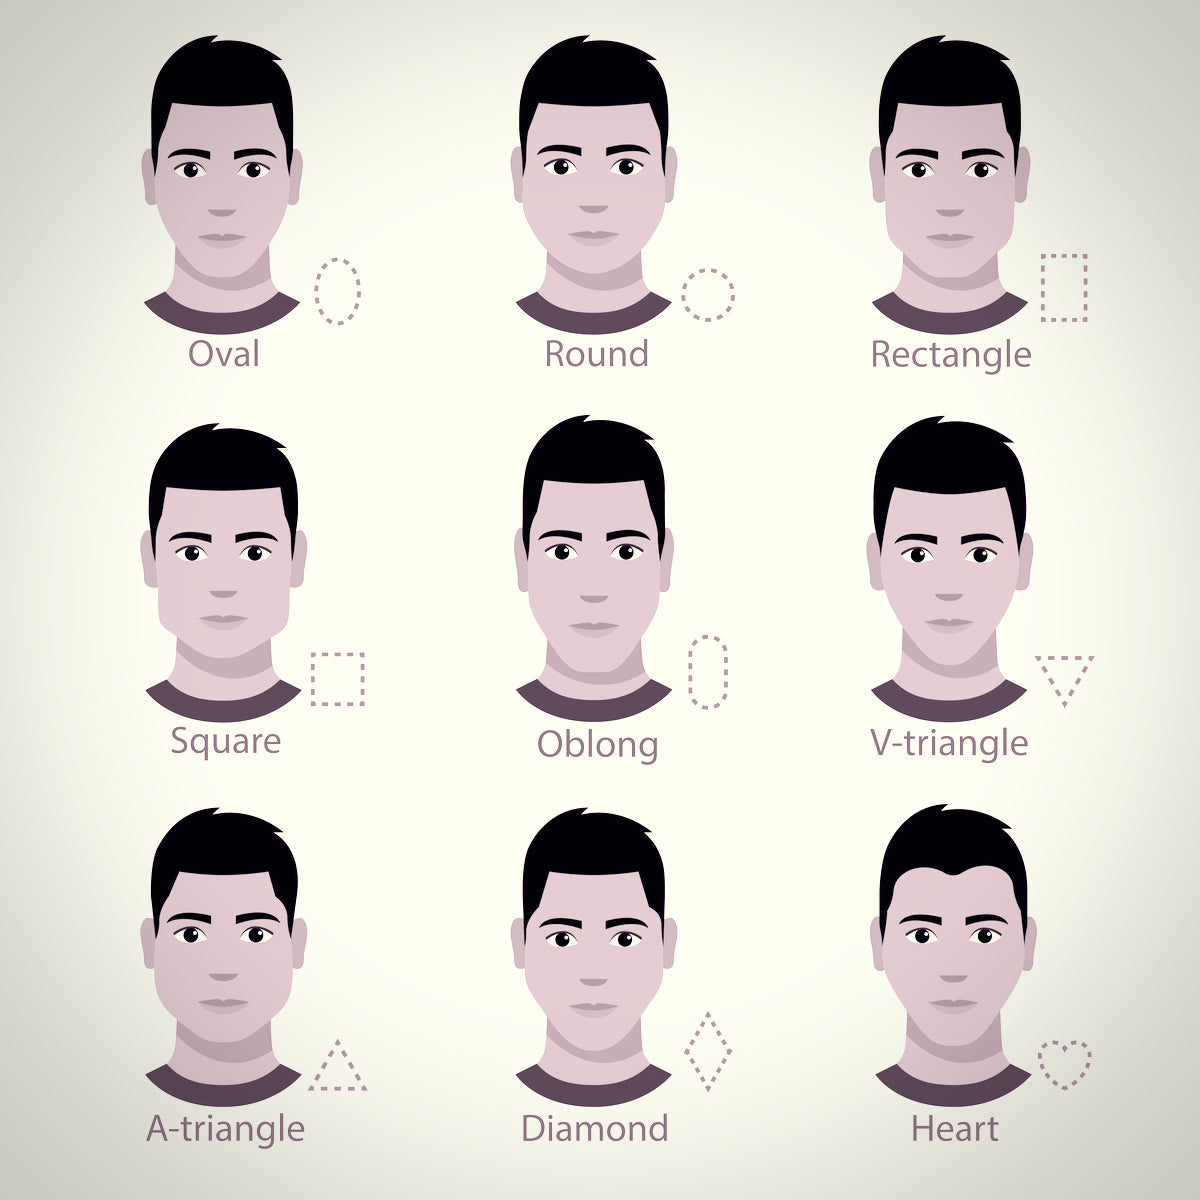 Men's face shapes guide